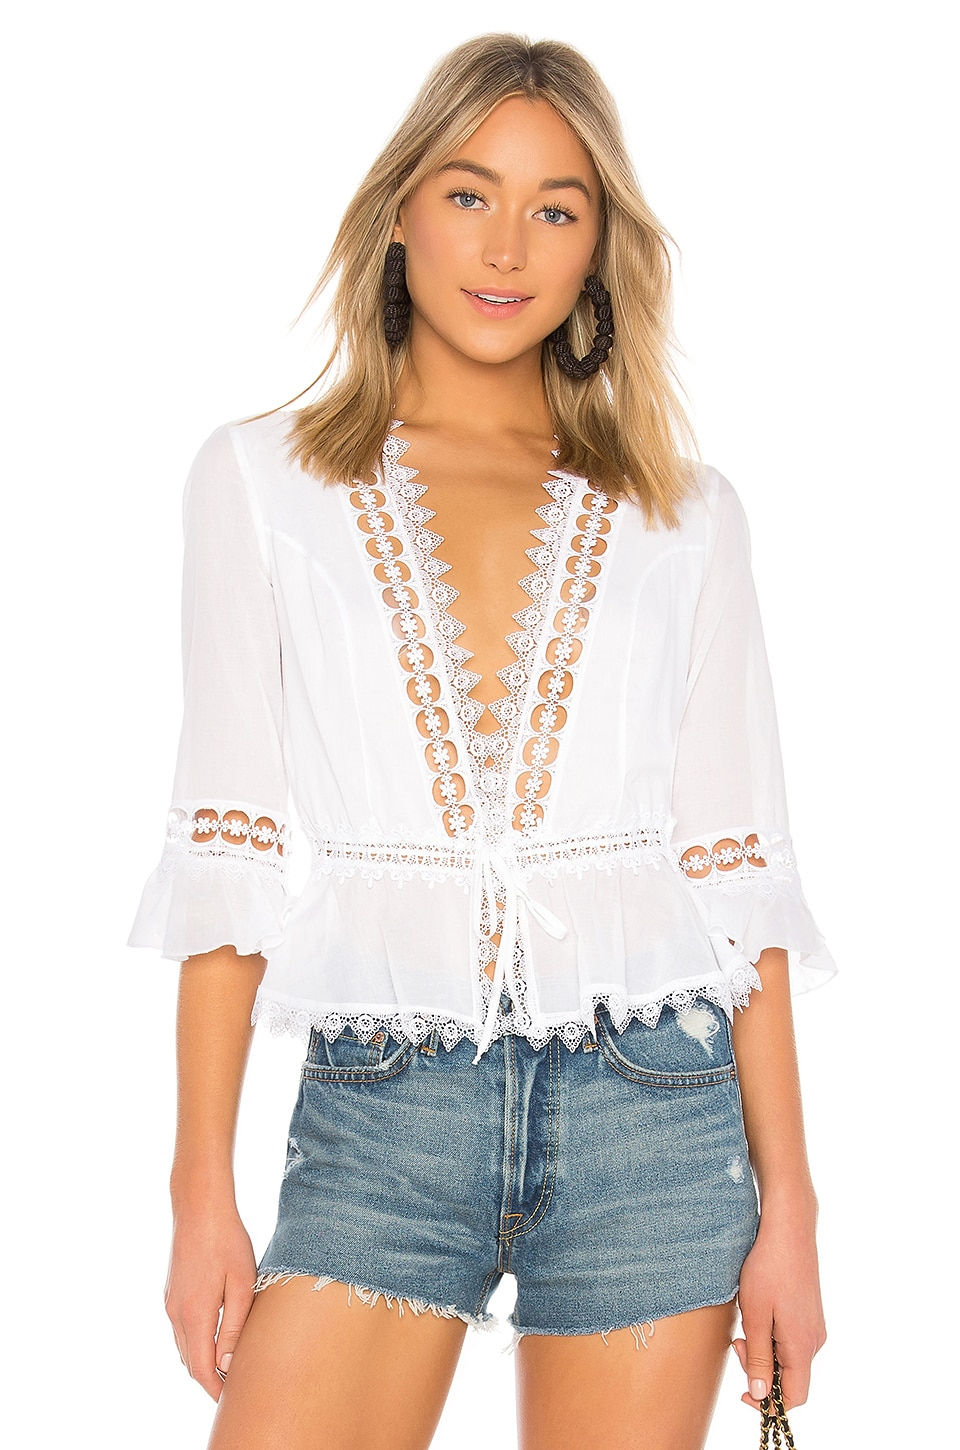 Charo Ruiz Ibiza Edda Top in White